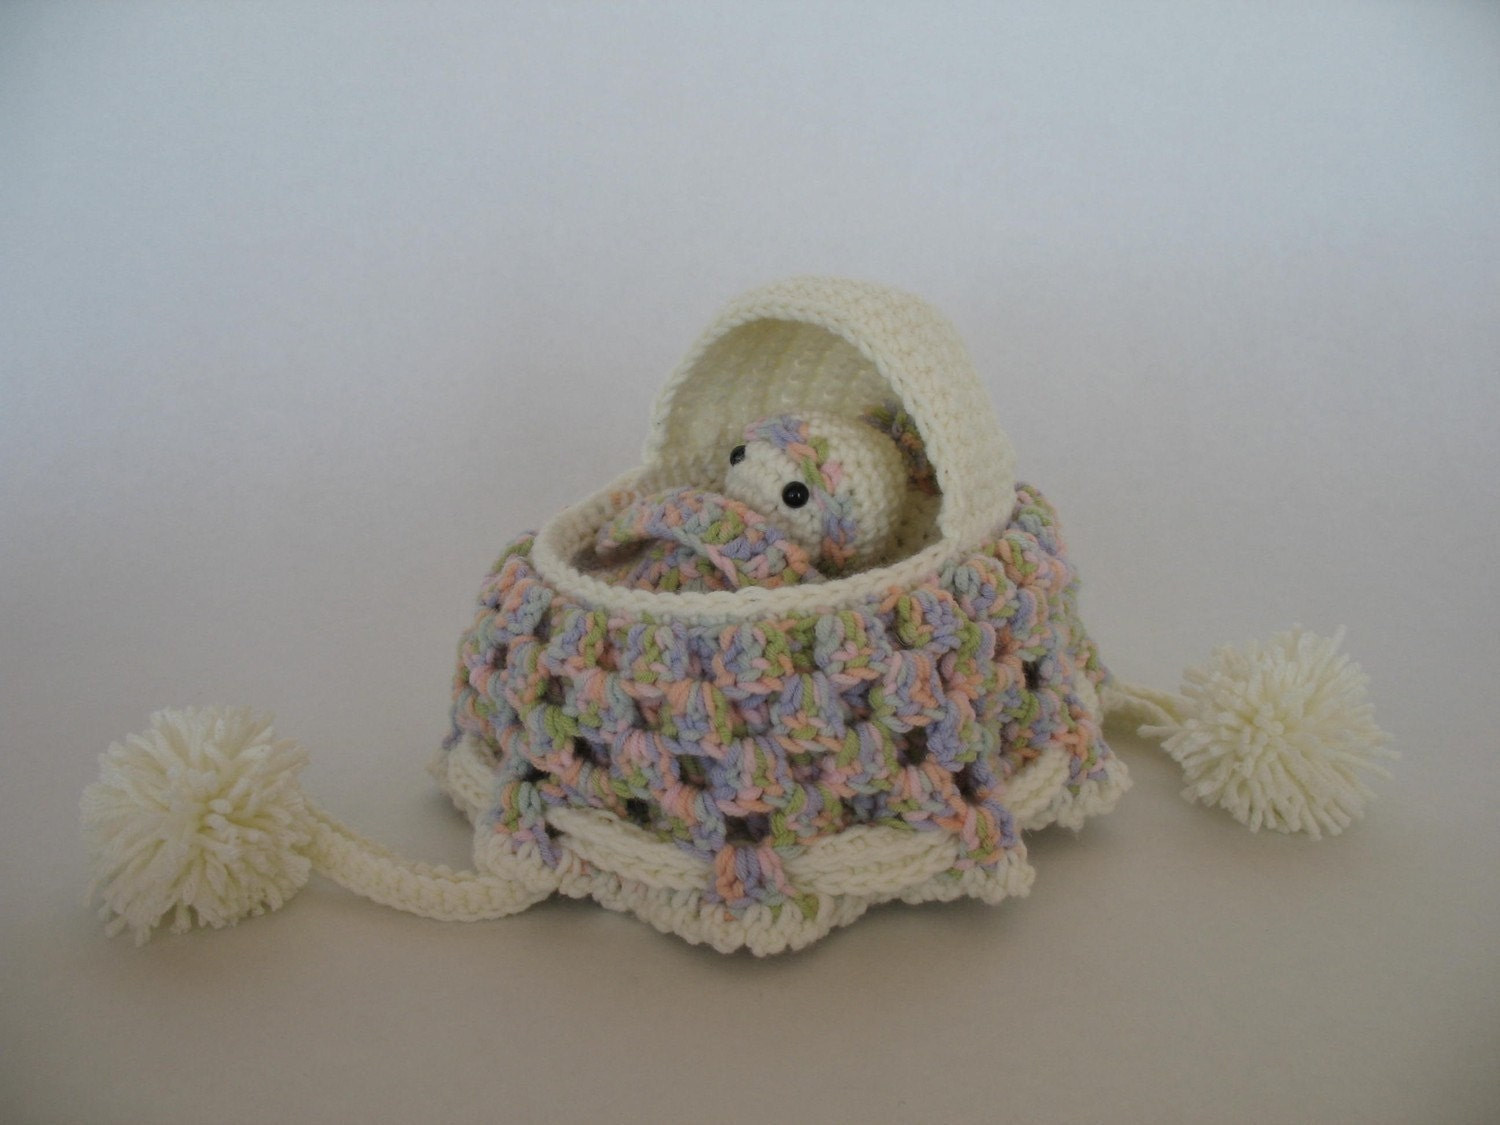 Crochet Baby Cradle Purse Pattern : Crochet Cradle Purse Pattern by djonesgirlz on Etsy